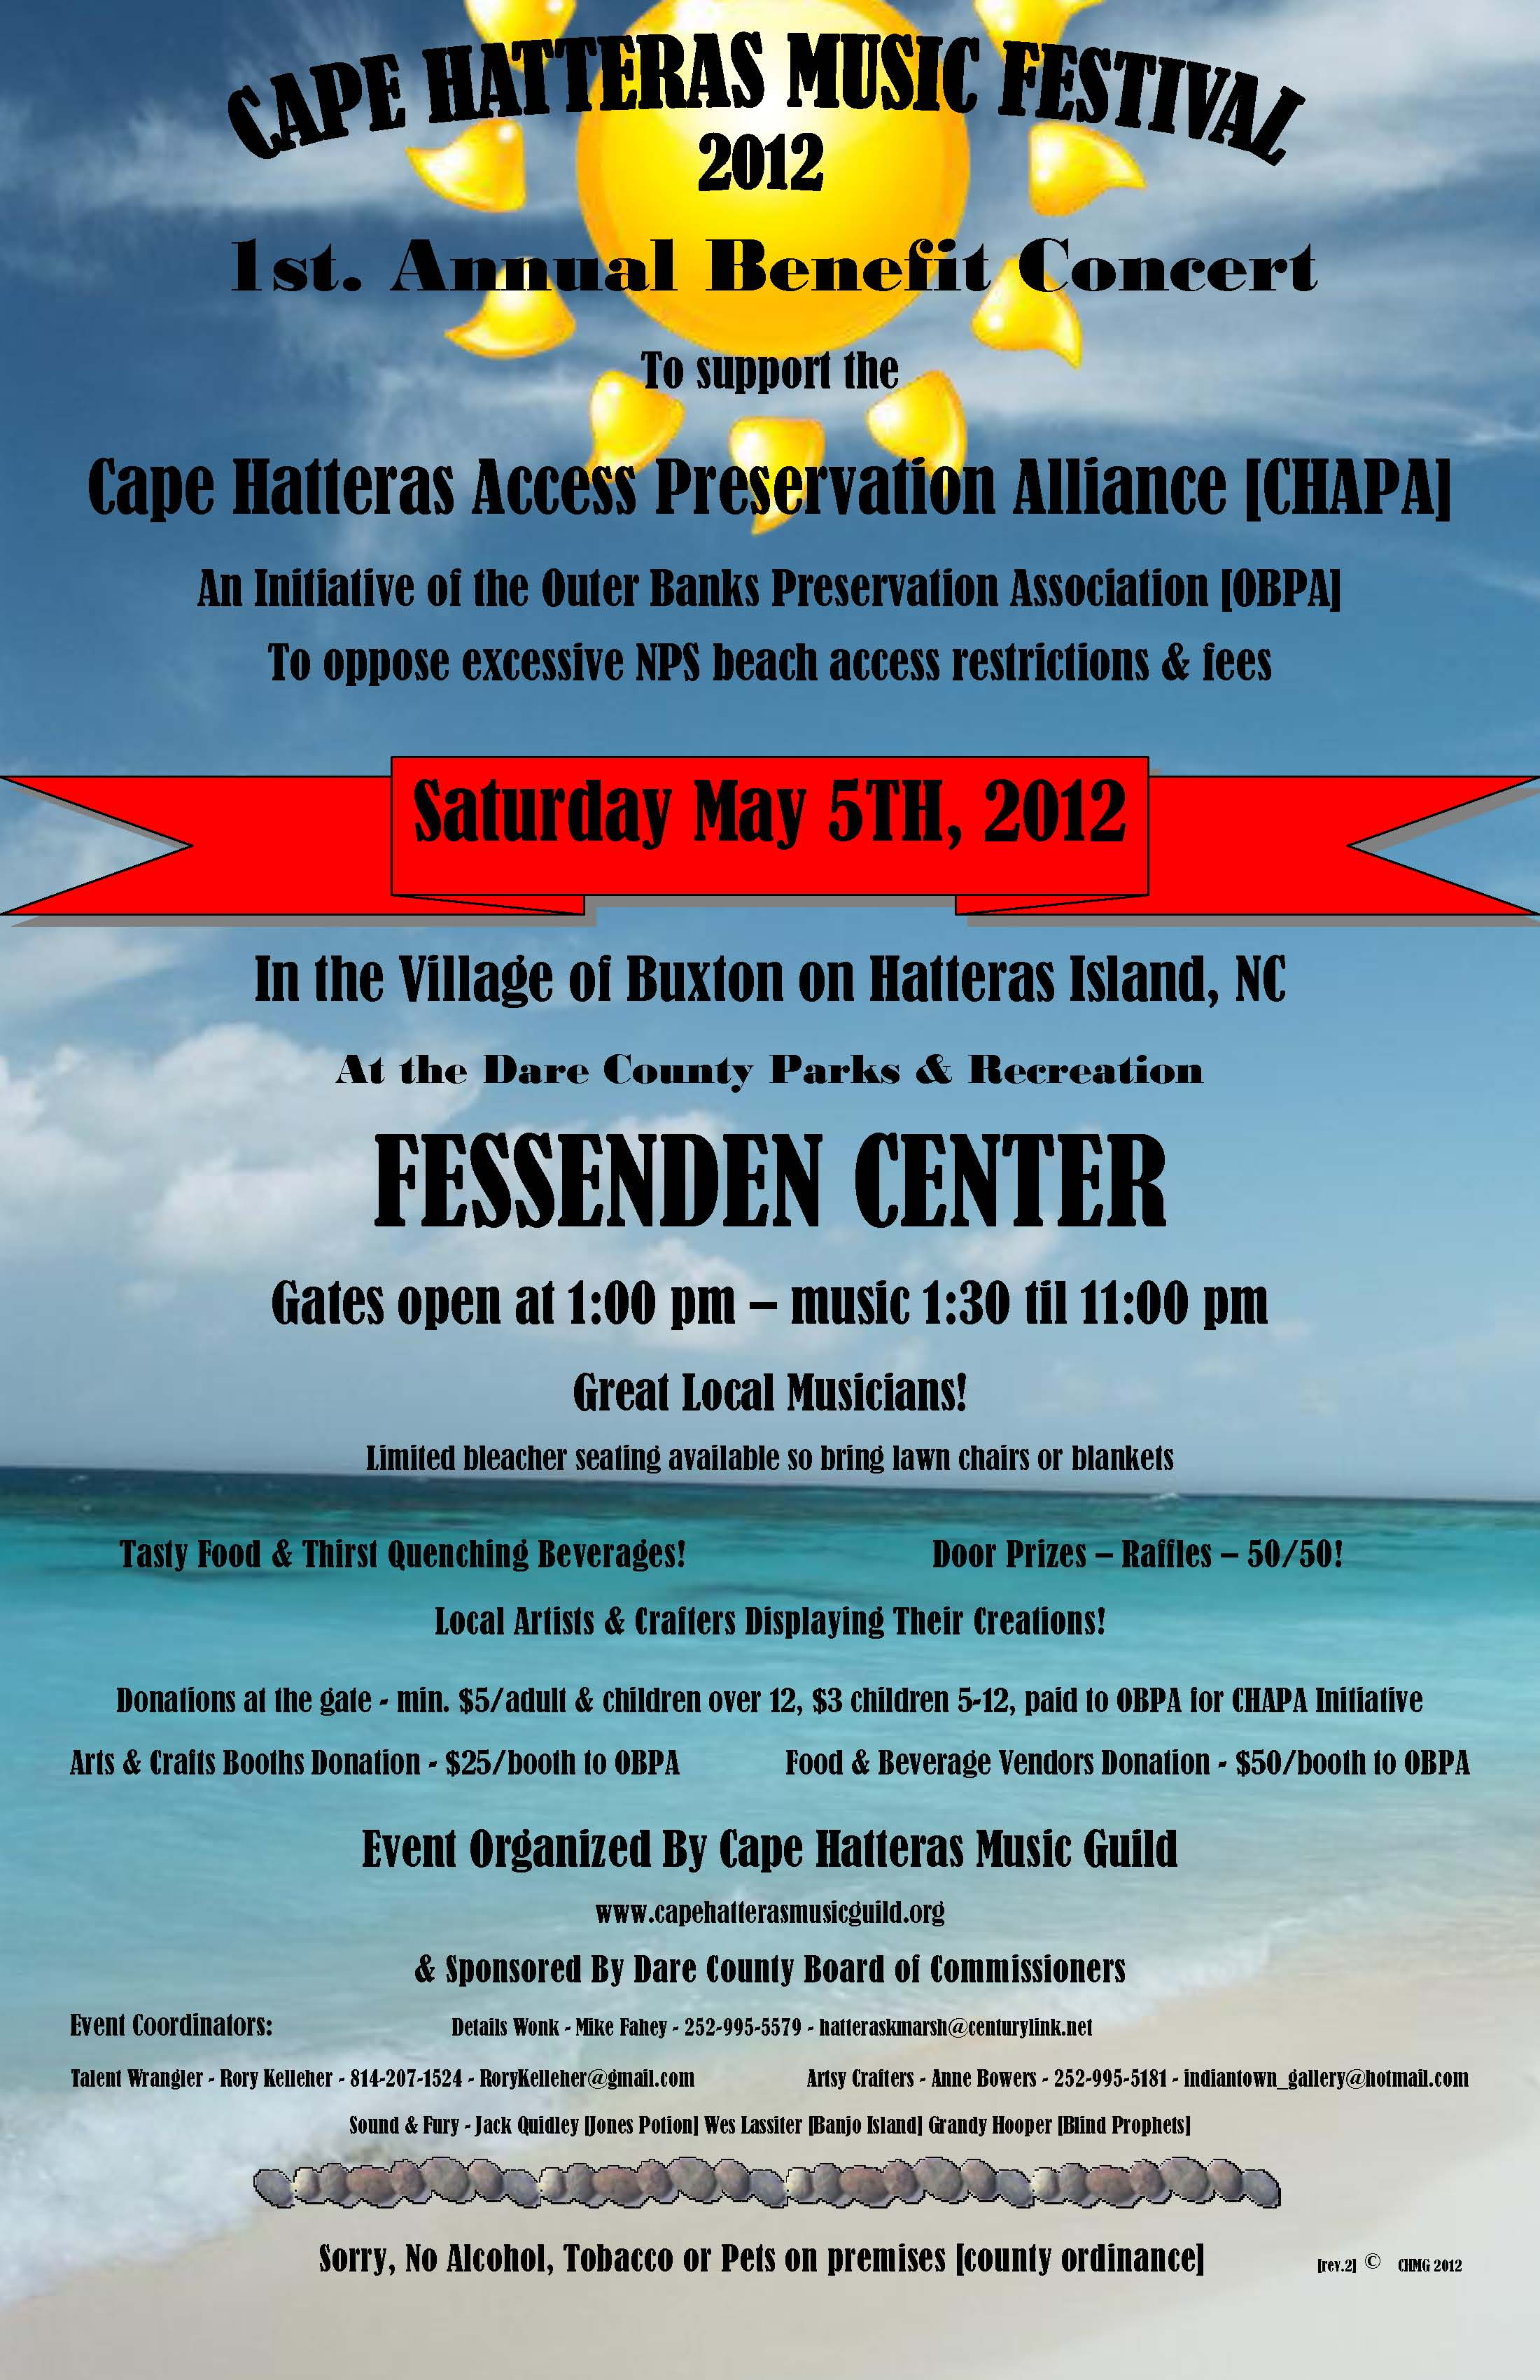 cape hatteras music festival 2012 poster with color graphics locked